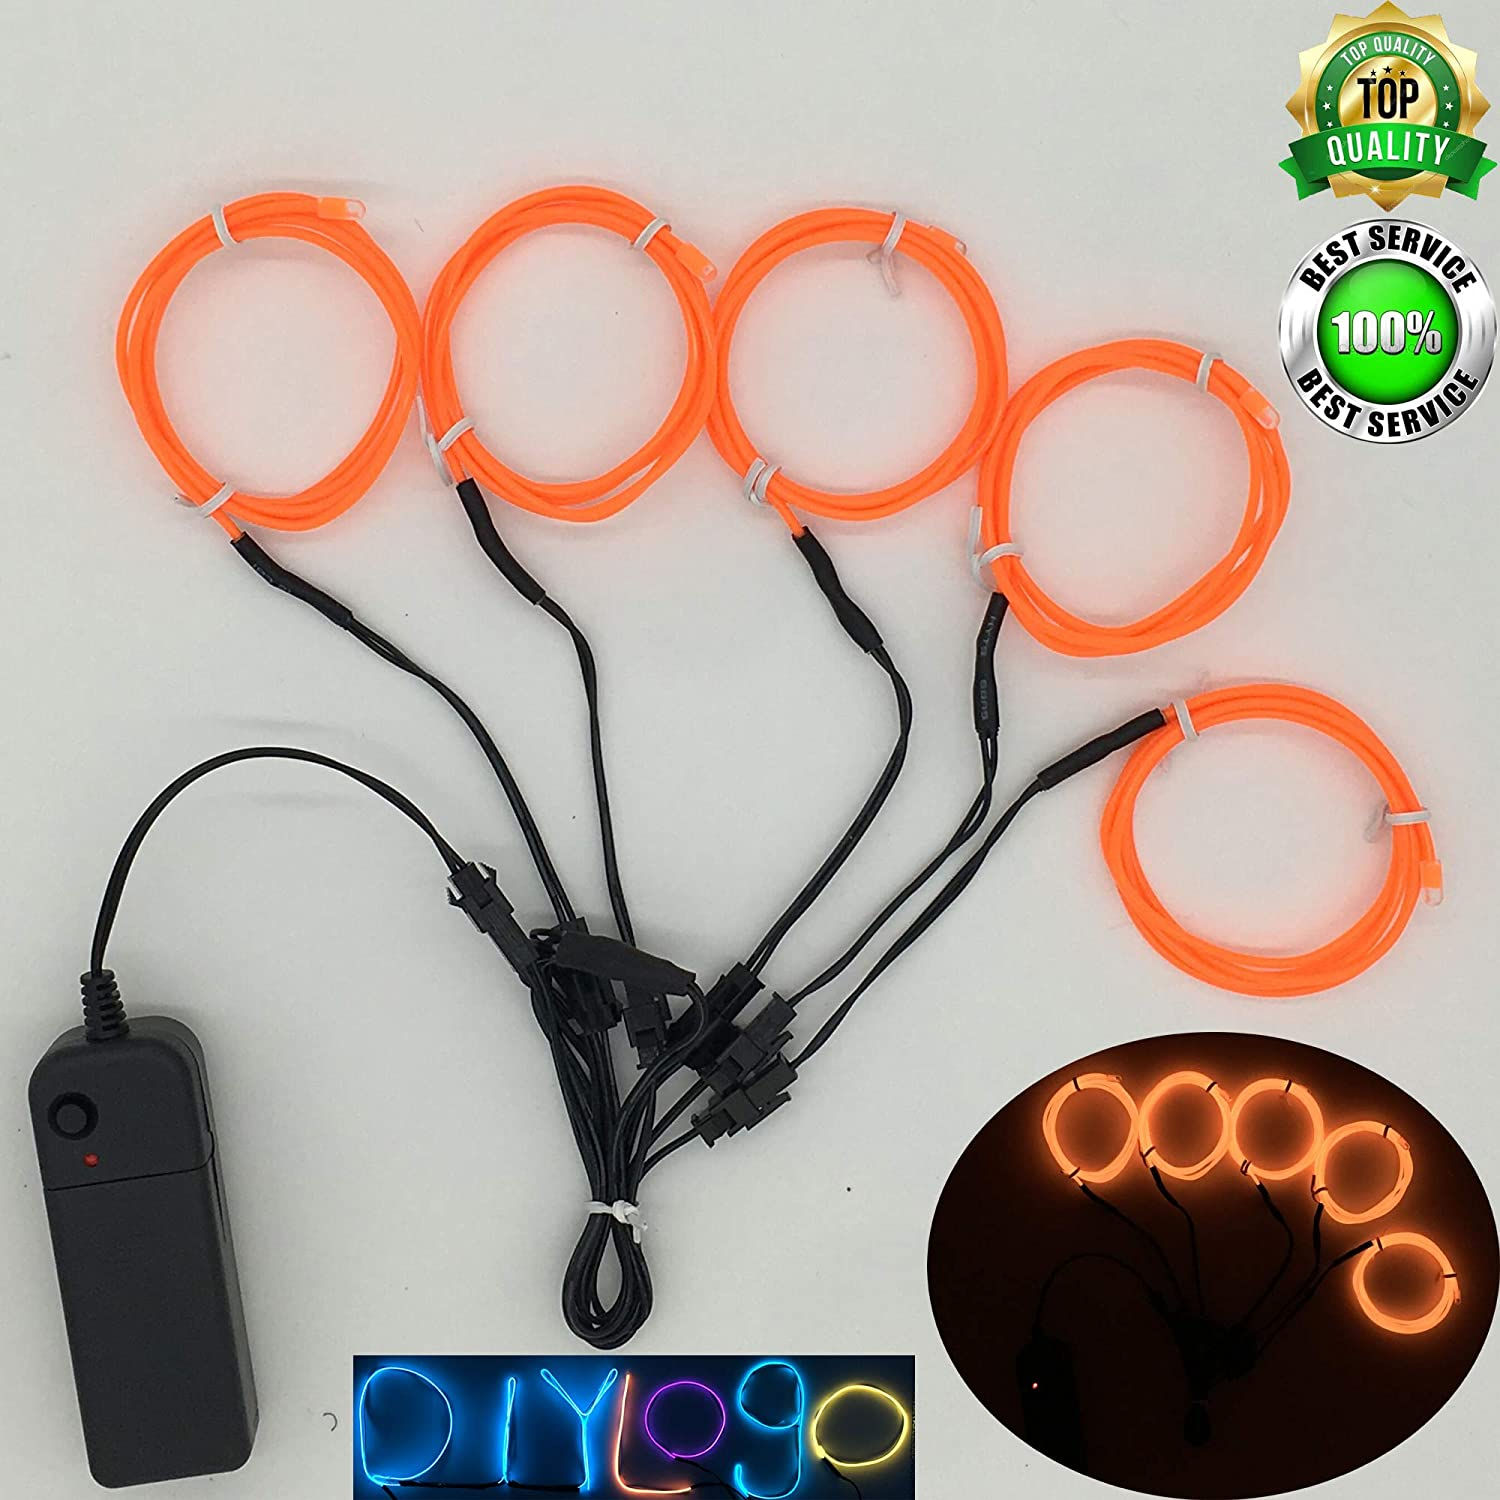 ShineWorld EL Wire Kit 5 by 1Meter,Neon EL Wire kit,Neon Light Wire,Glowing Wire,EL Wire with Battery Pack for Parties,Halloween,Christmas,DIY Decoration